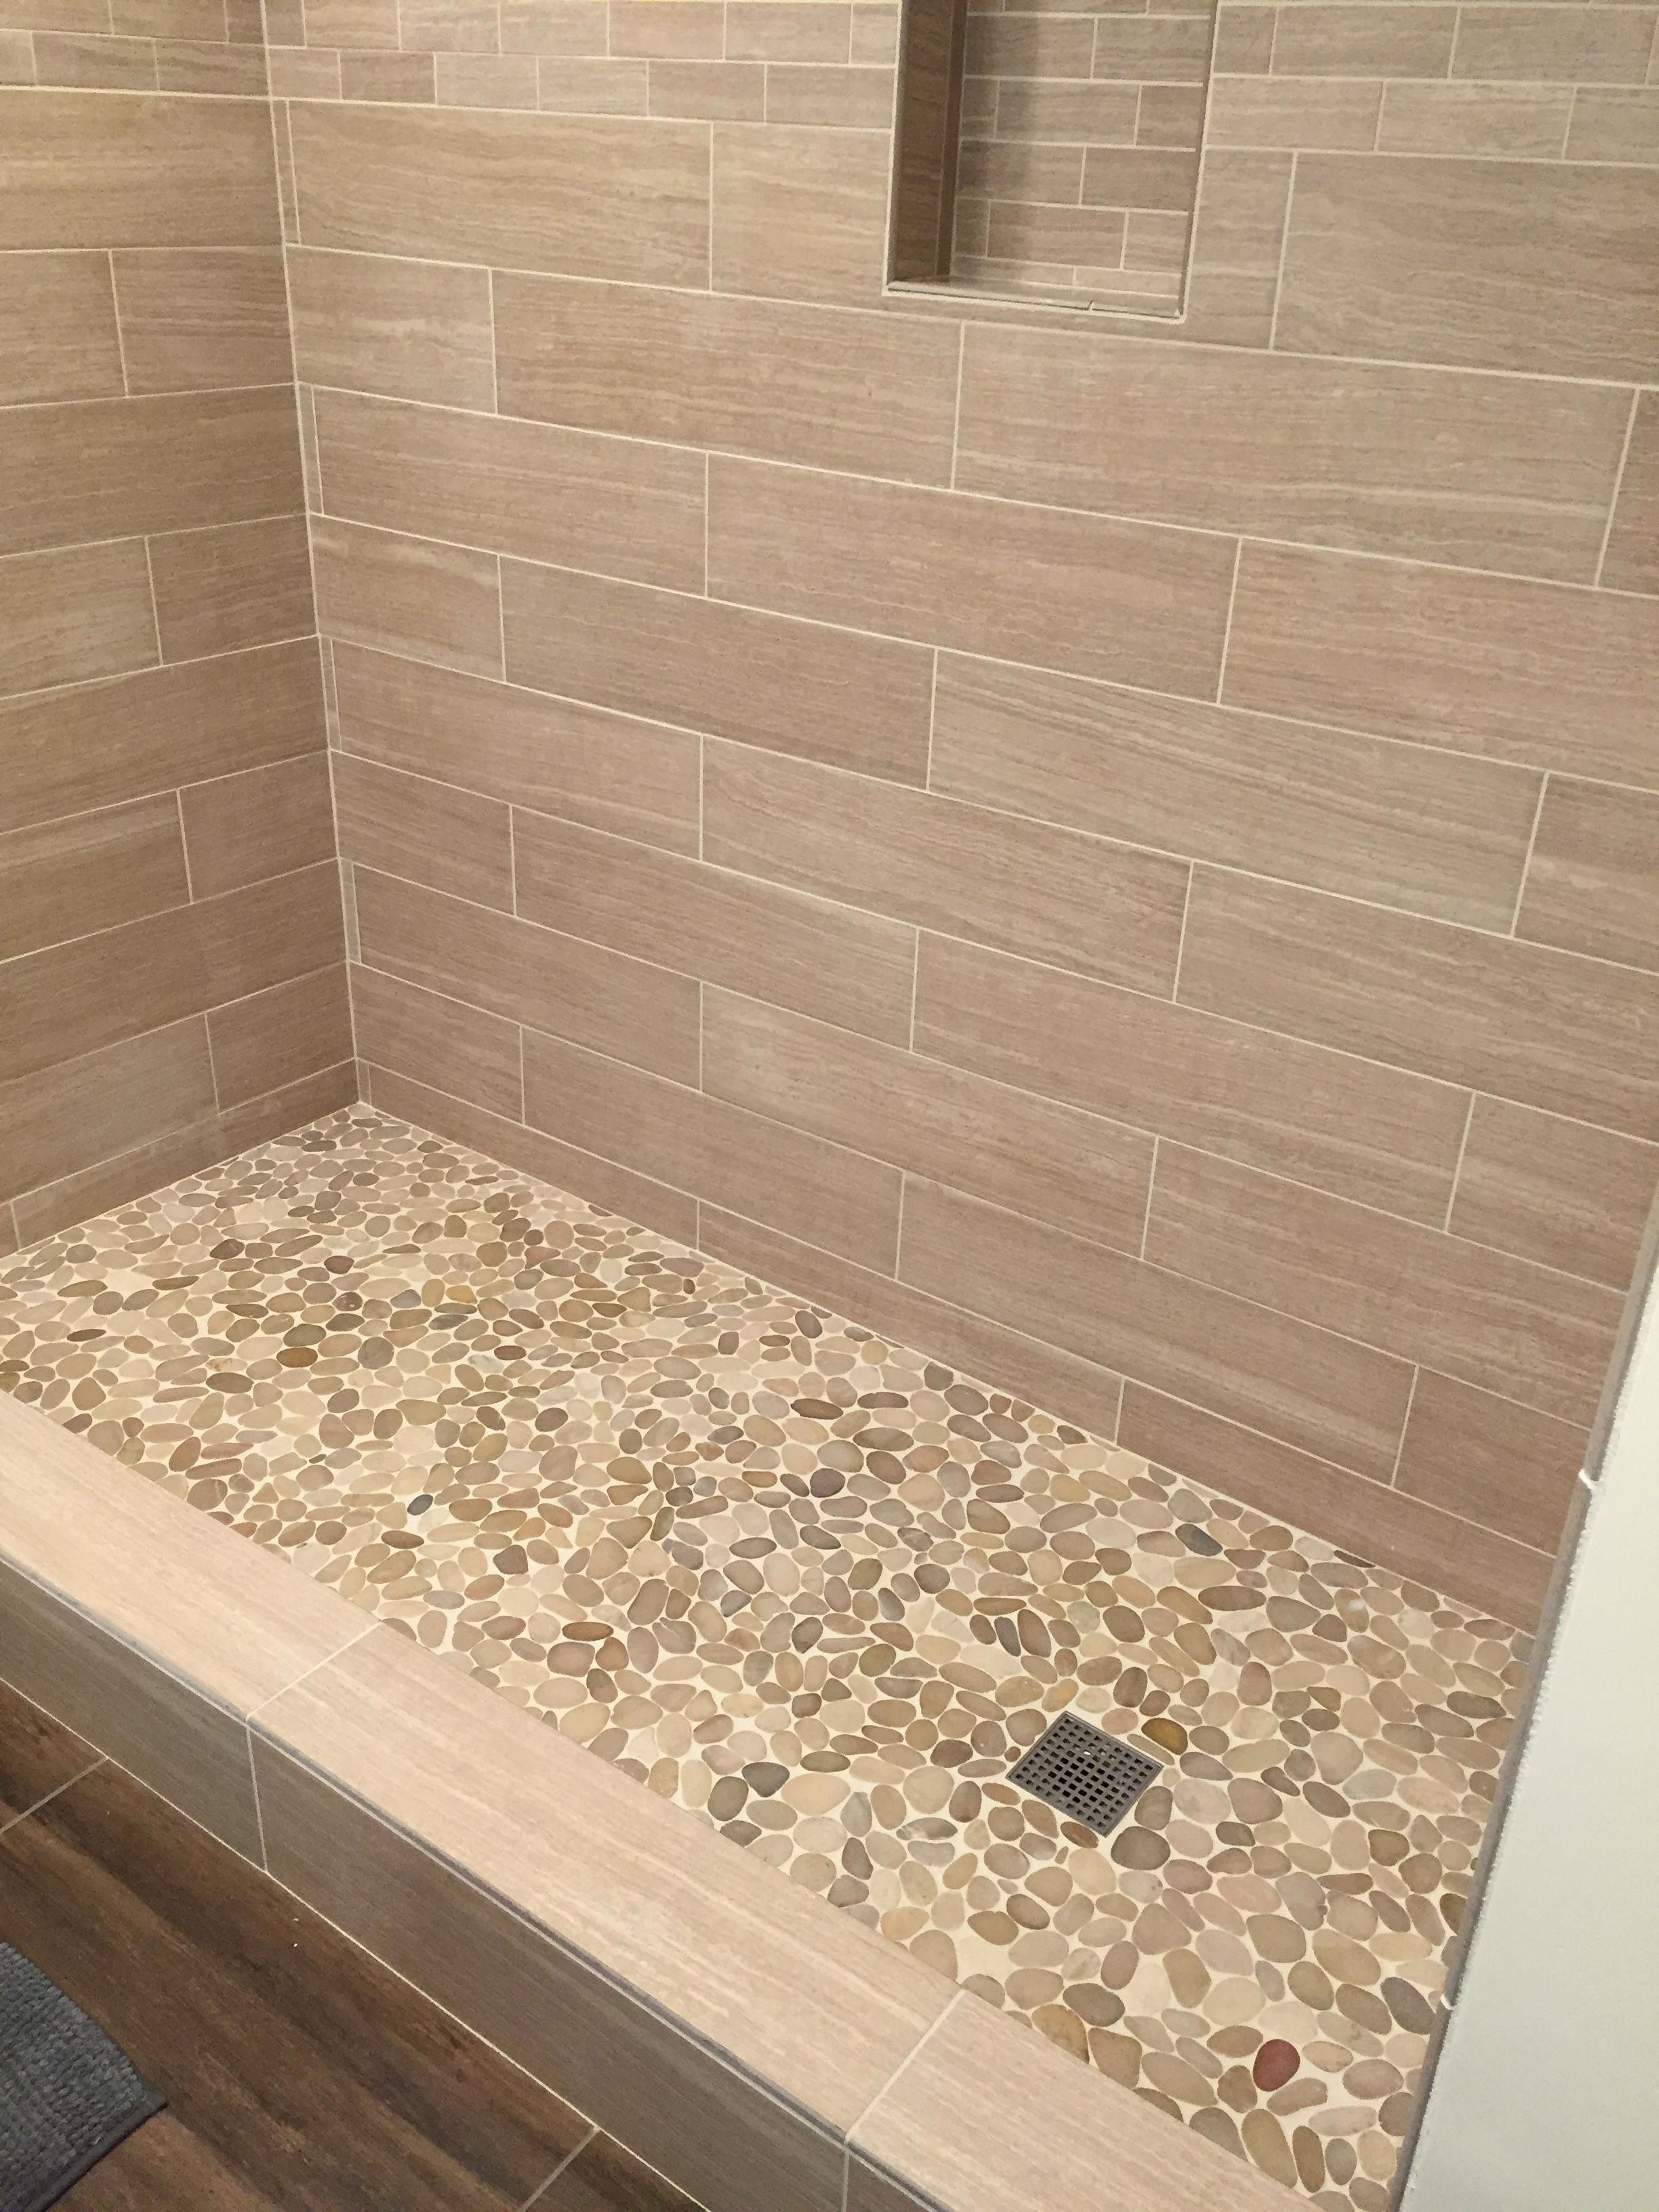 How To Prepare A Tub Surround For Tiling Tile Tub Surround Tub